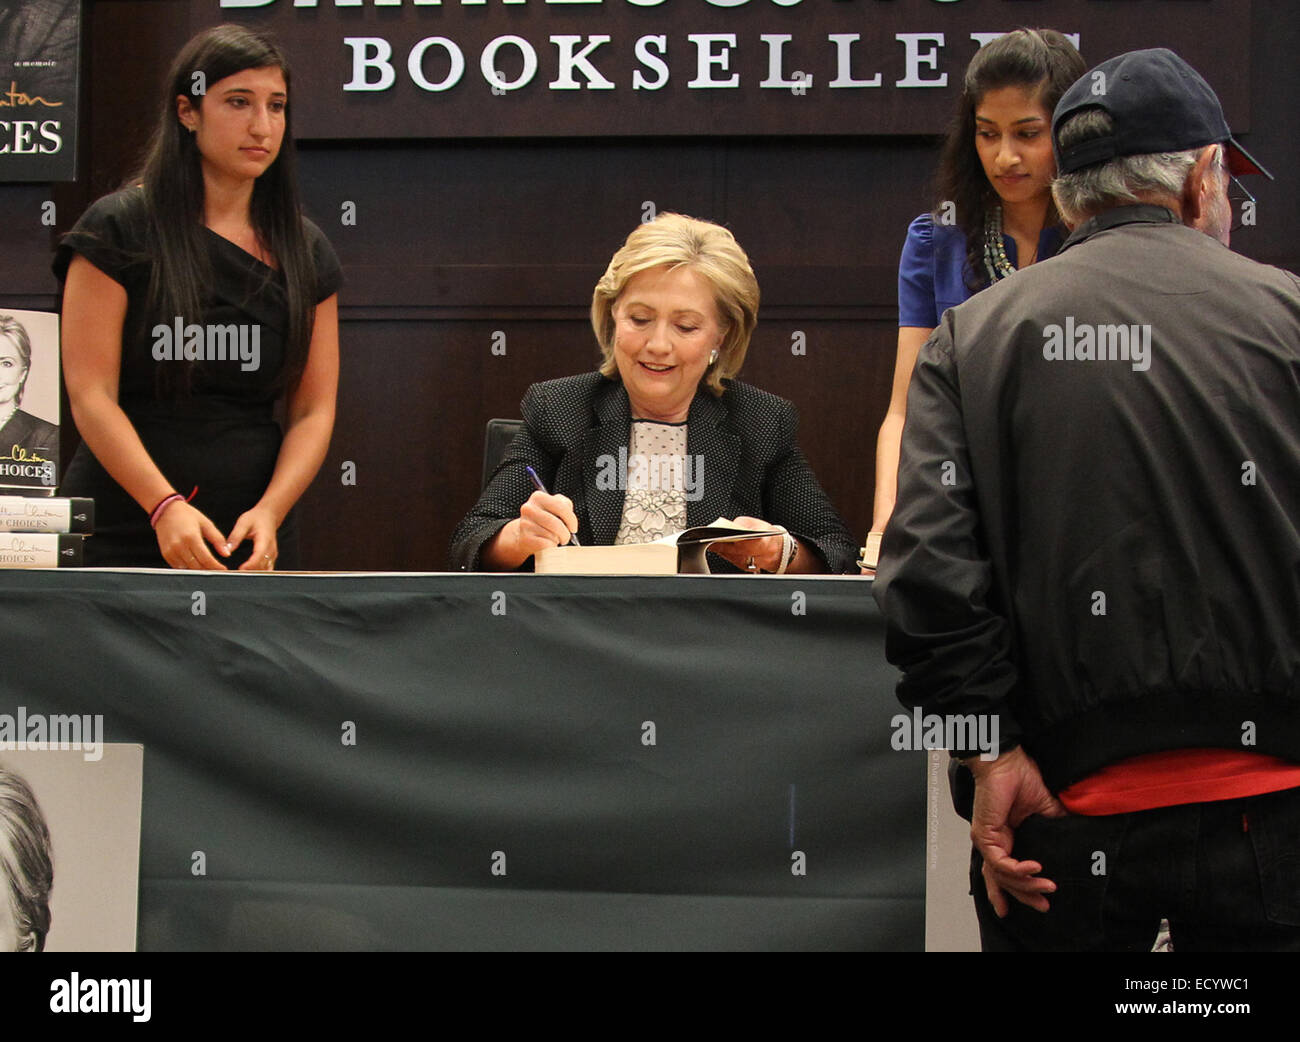 Hillary Rodham Clinton's book signing event, held at Barnes